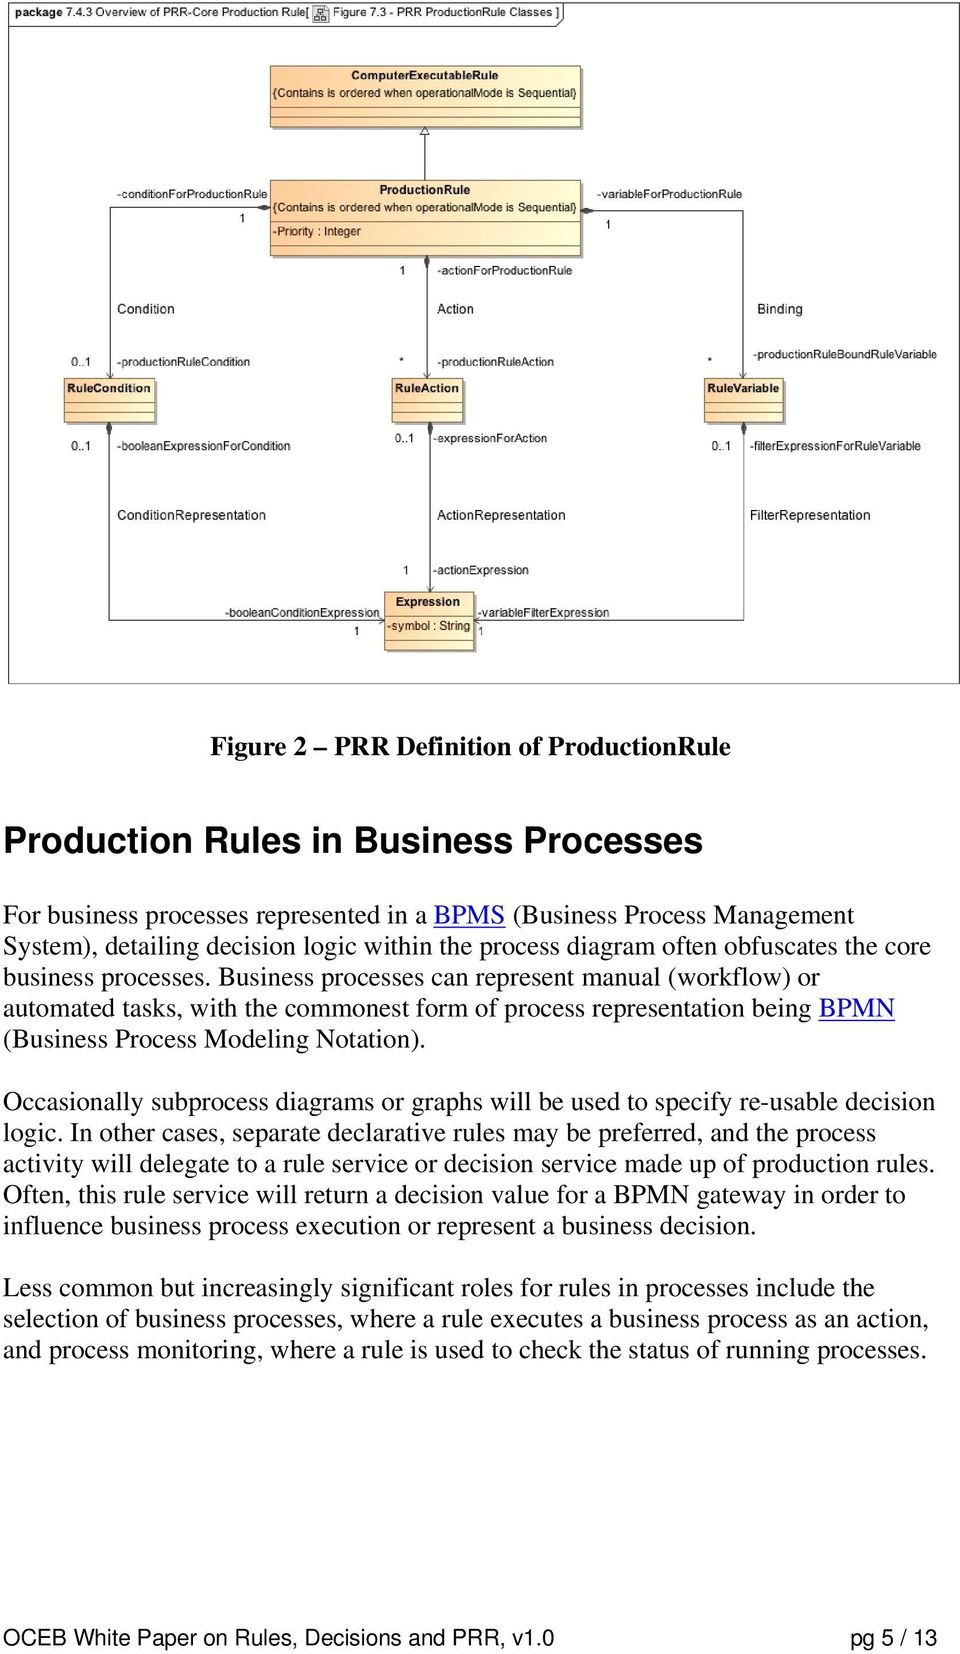 Business processes can represent manual (workflow) or automated tasks, with the commonest form of process representation being BPMN (Business Process Modeling Notation).